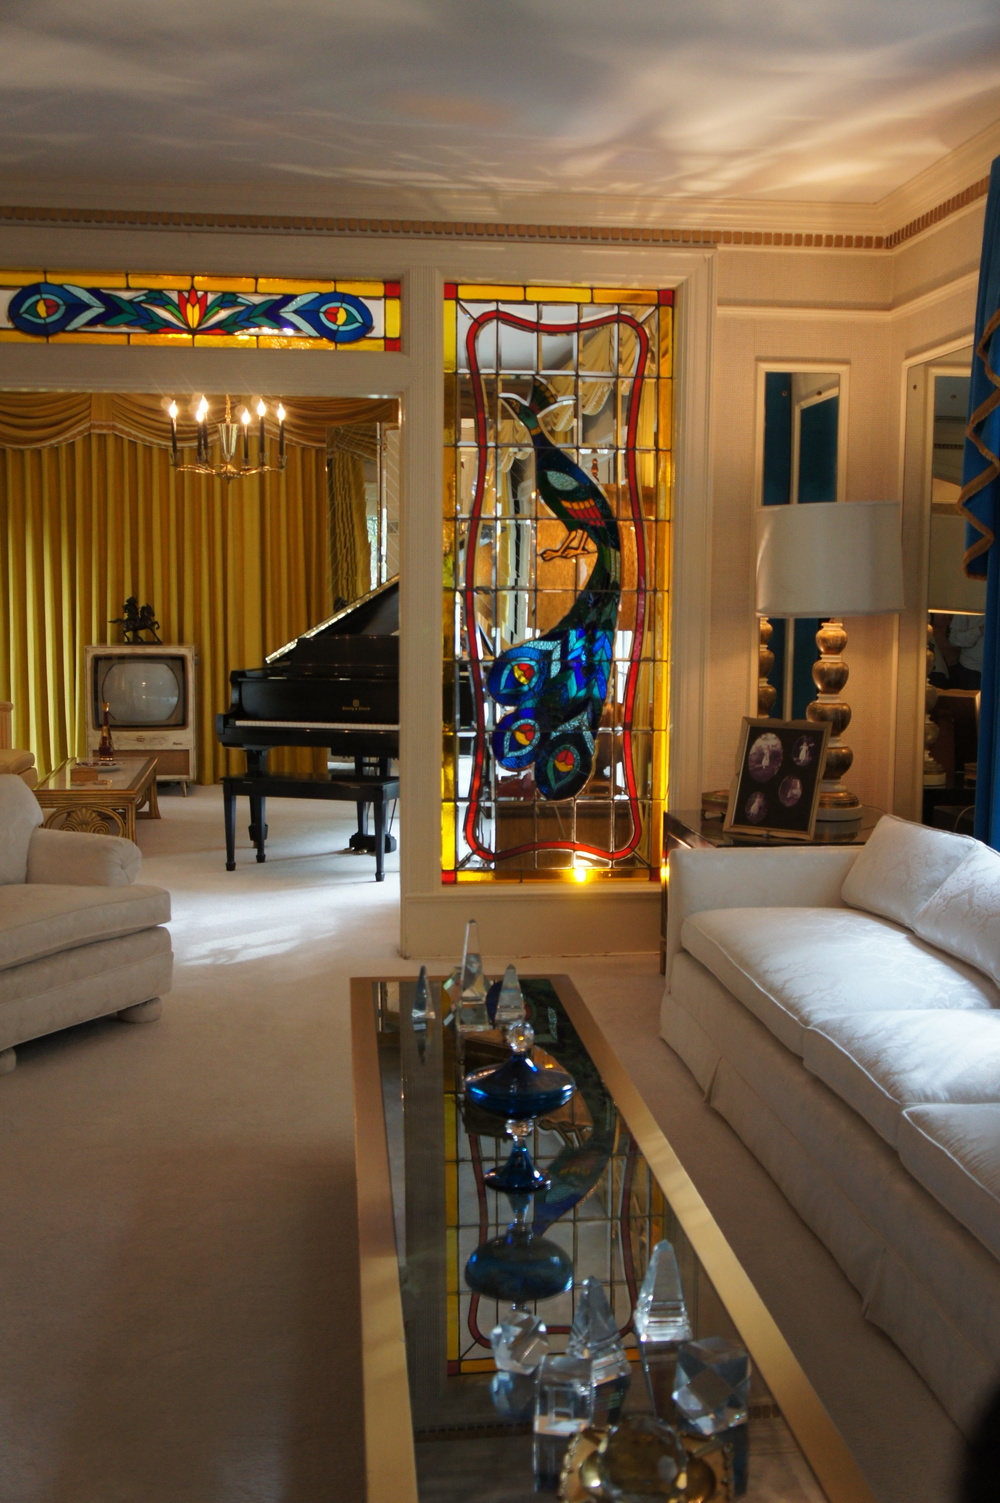 A shot of the inside of Graceland. Just a sample of the wonders of the house.